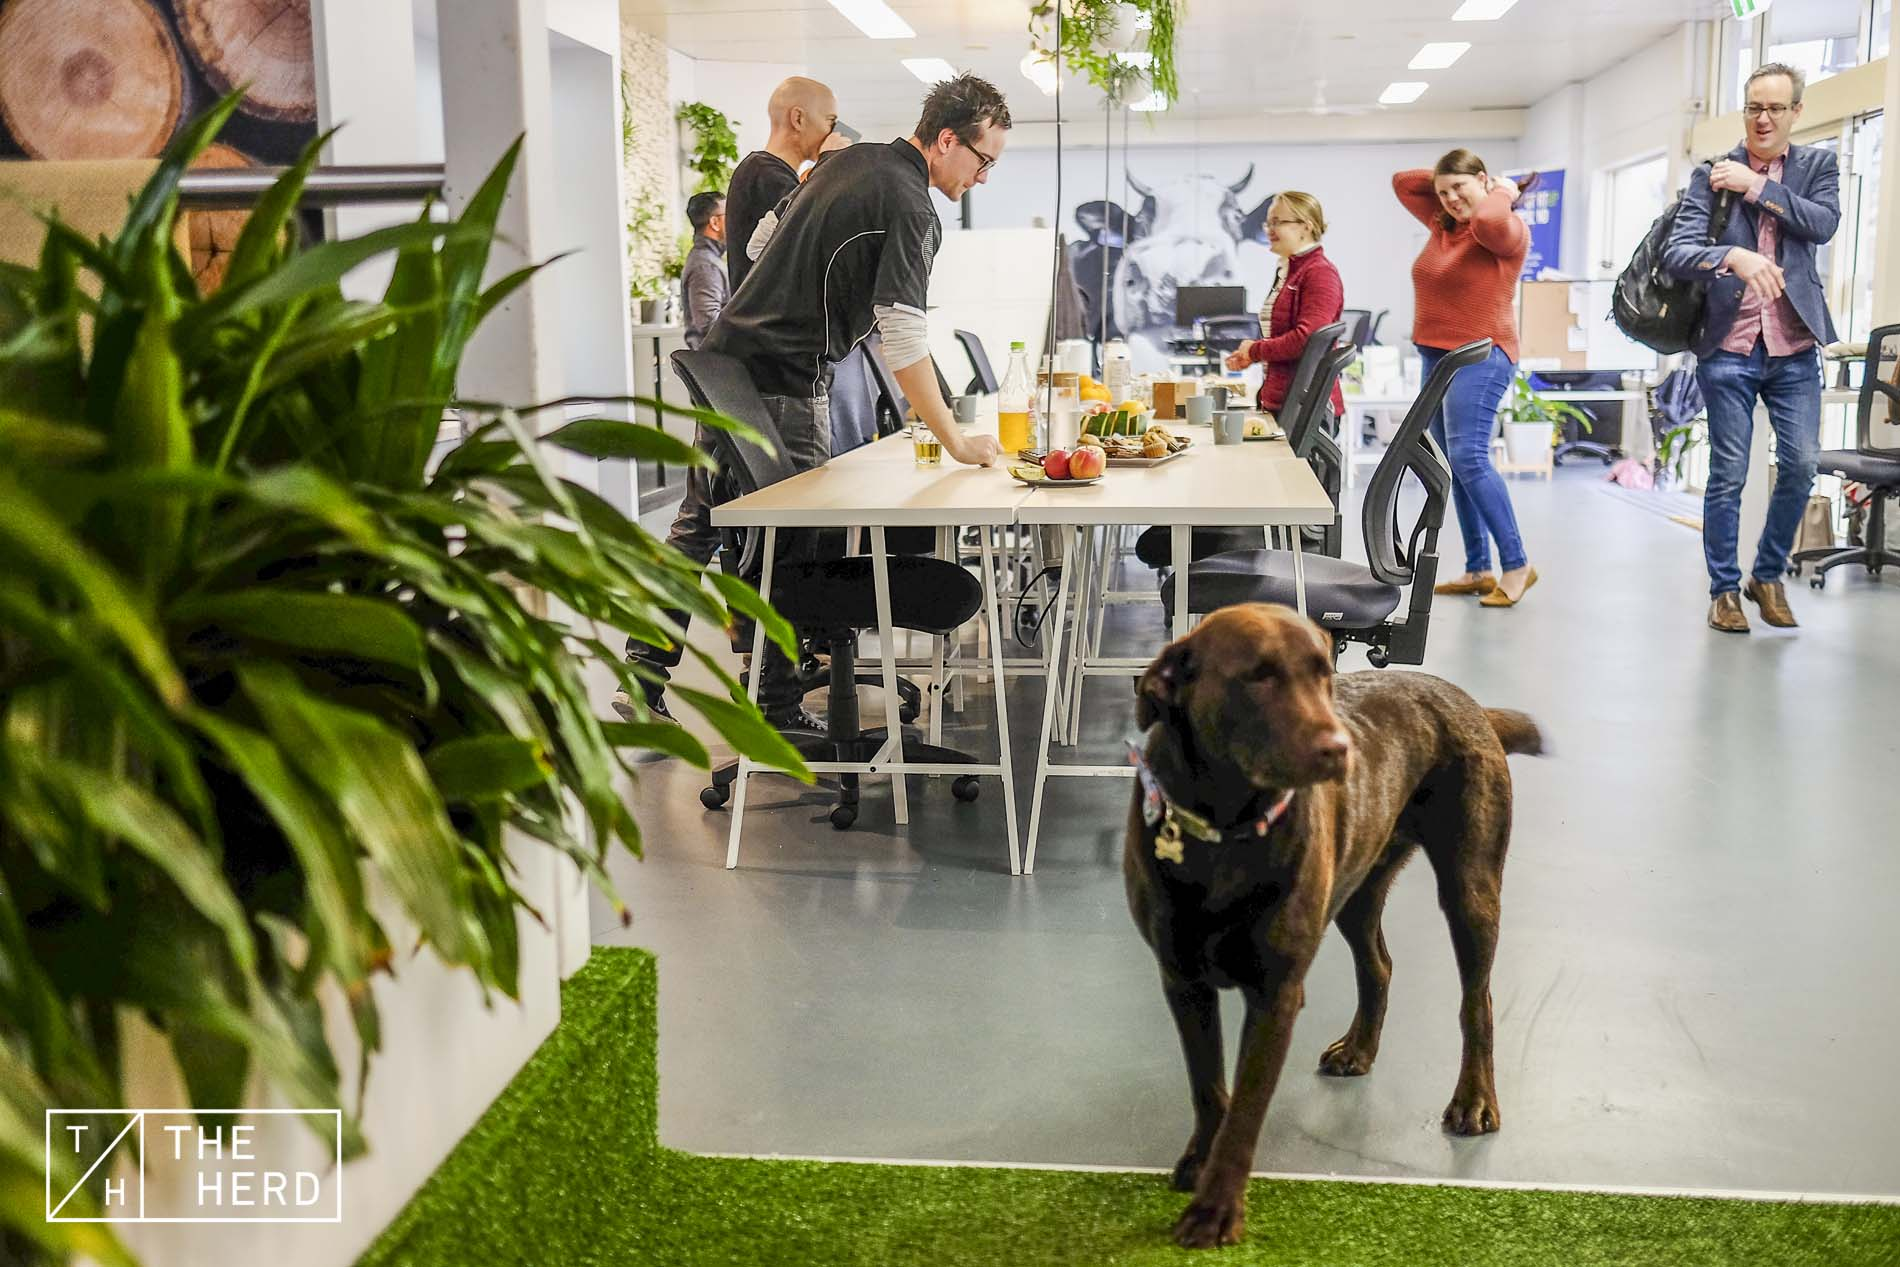 Pet-friendly Coworking space with a brown dog meeting rooms in gippsland